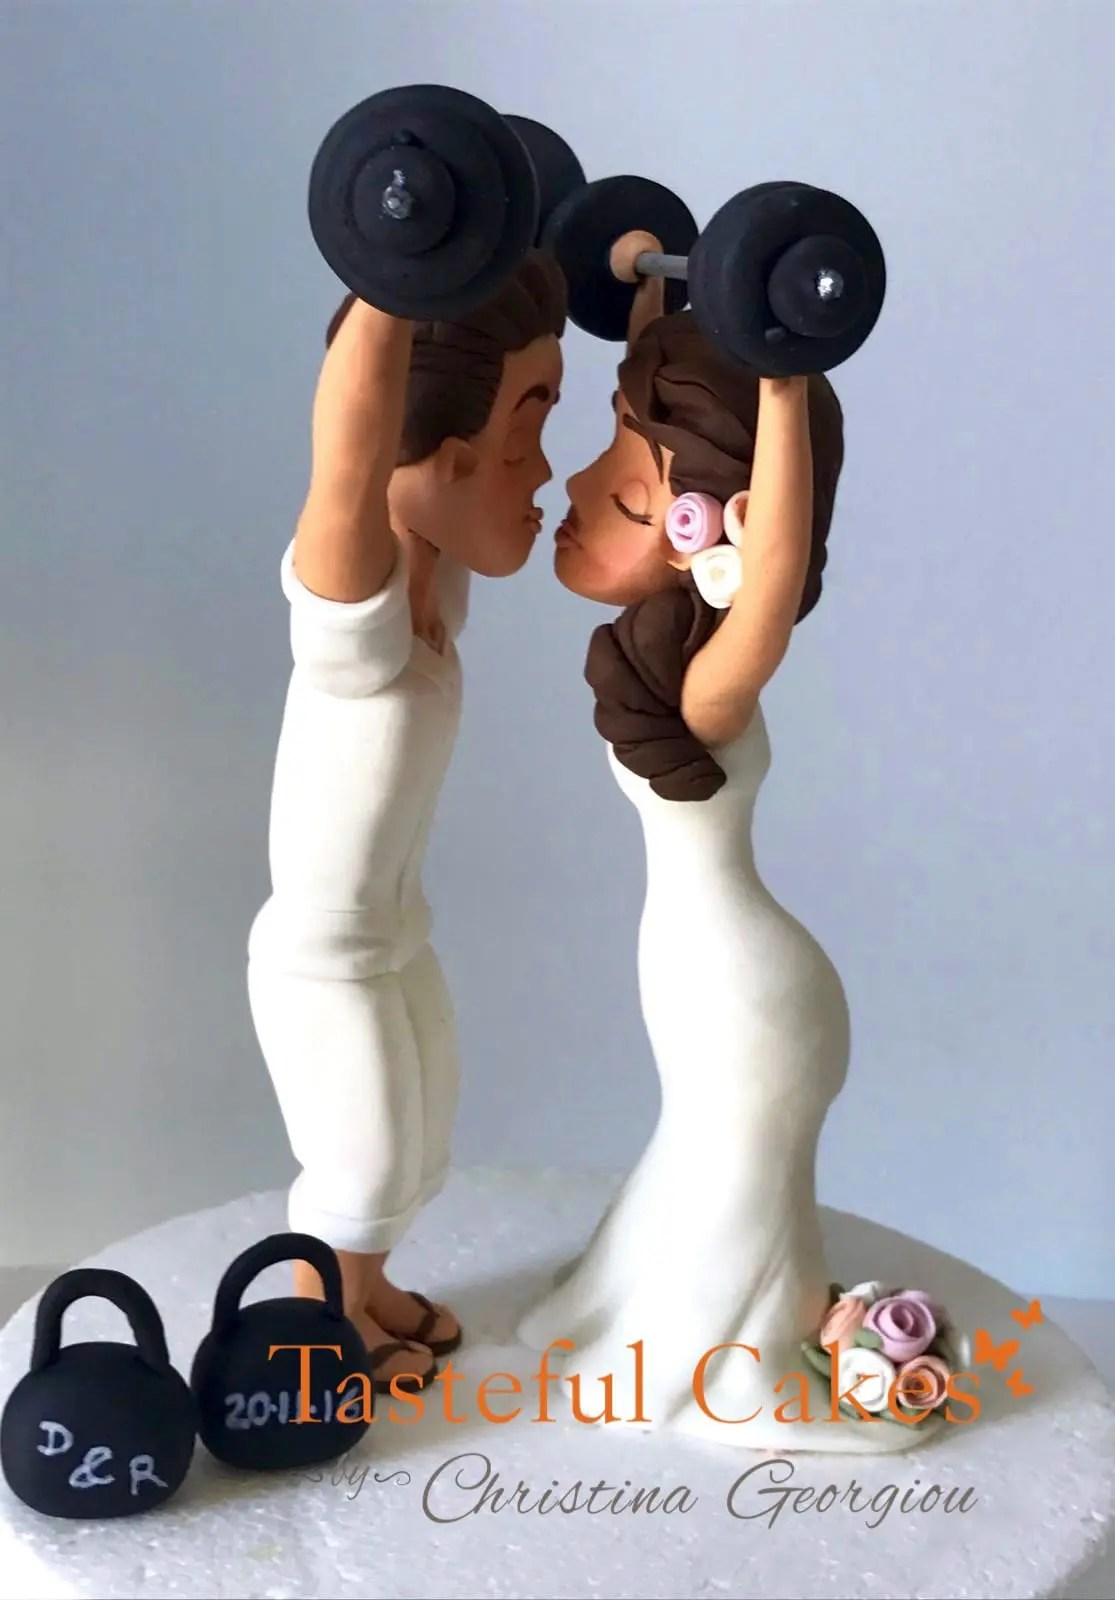 Tasteful Cakes By Christina Georgiou  GymWeightlifting Bride and Groom Wedding Topper